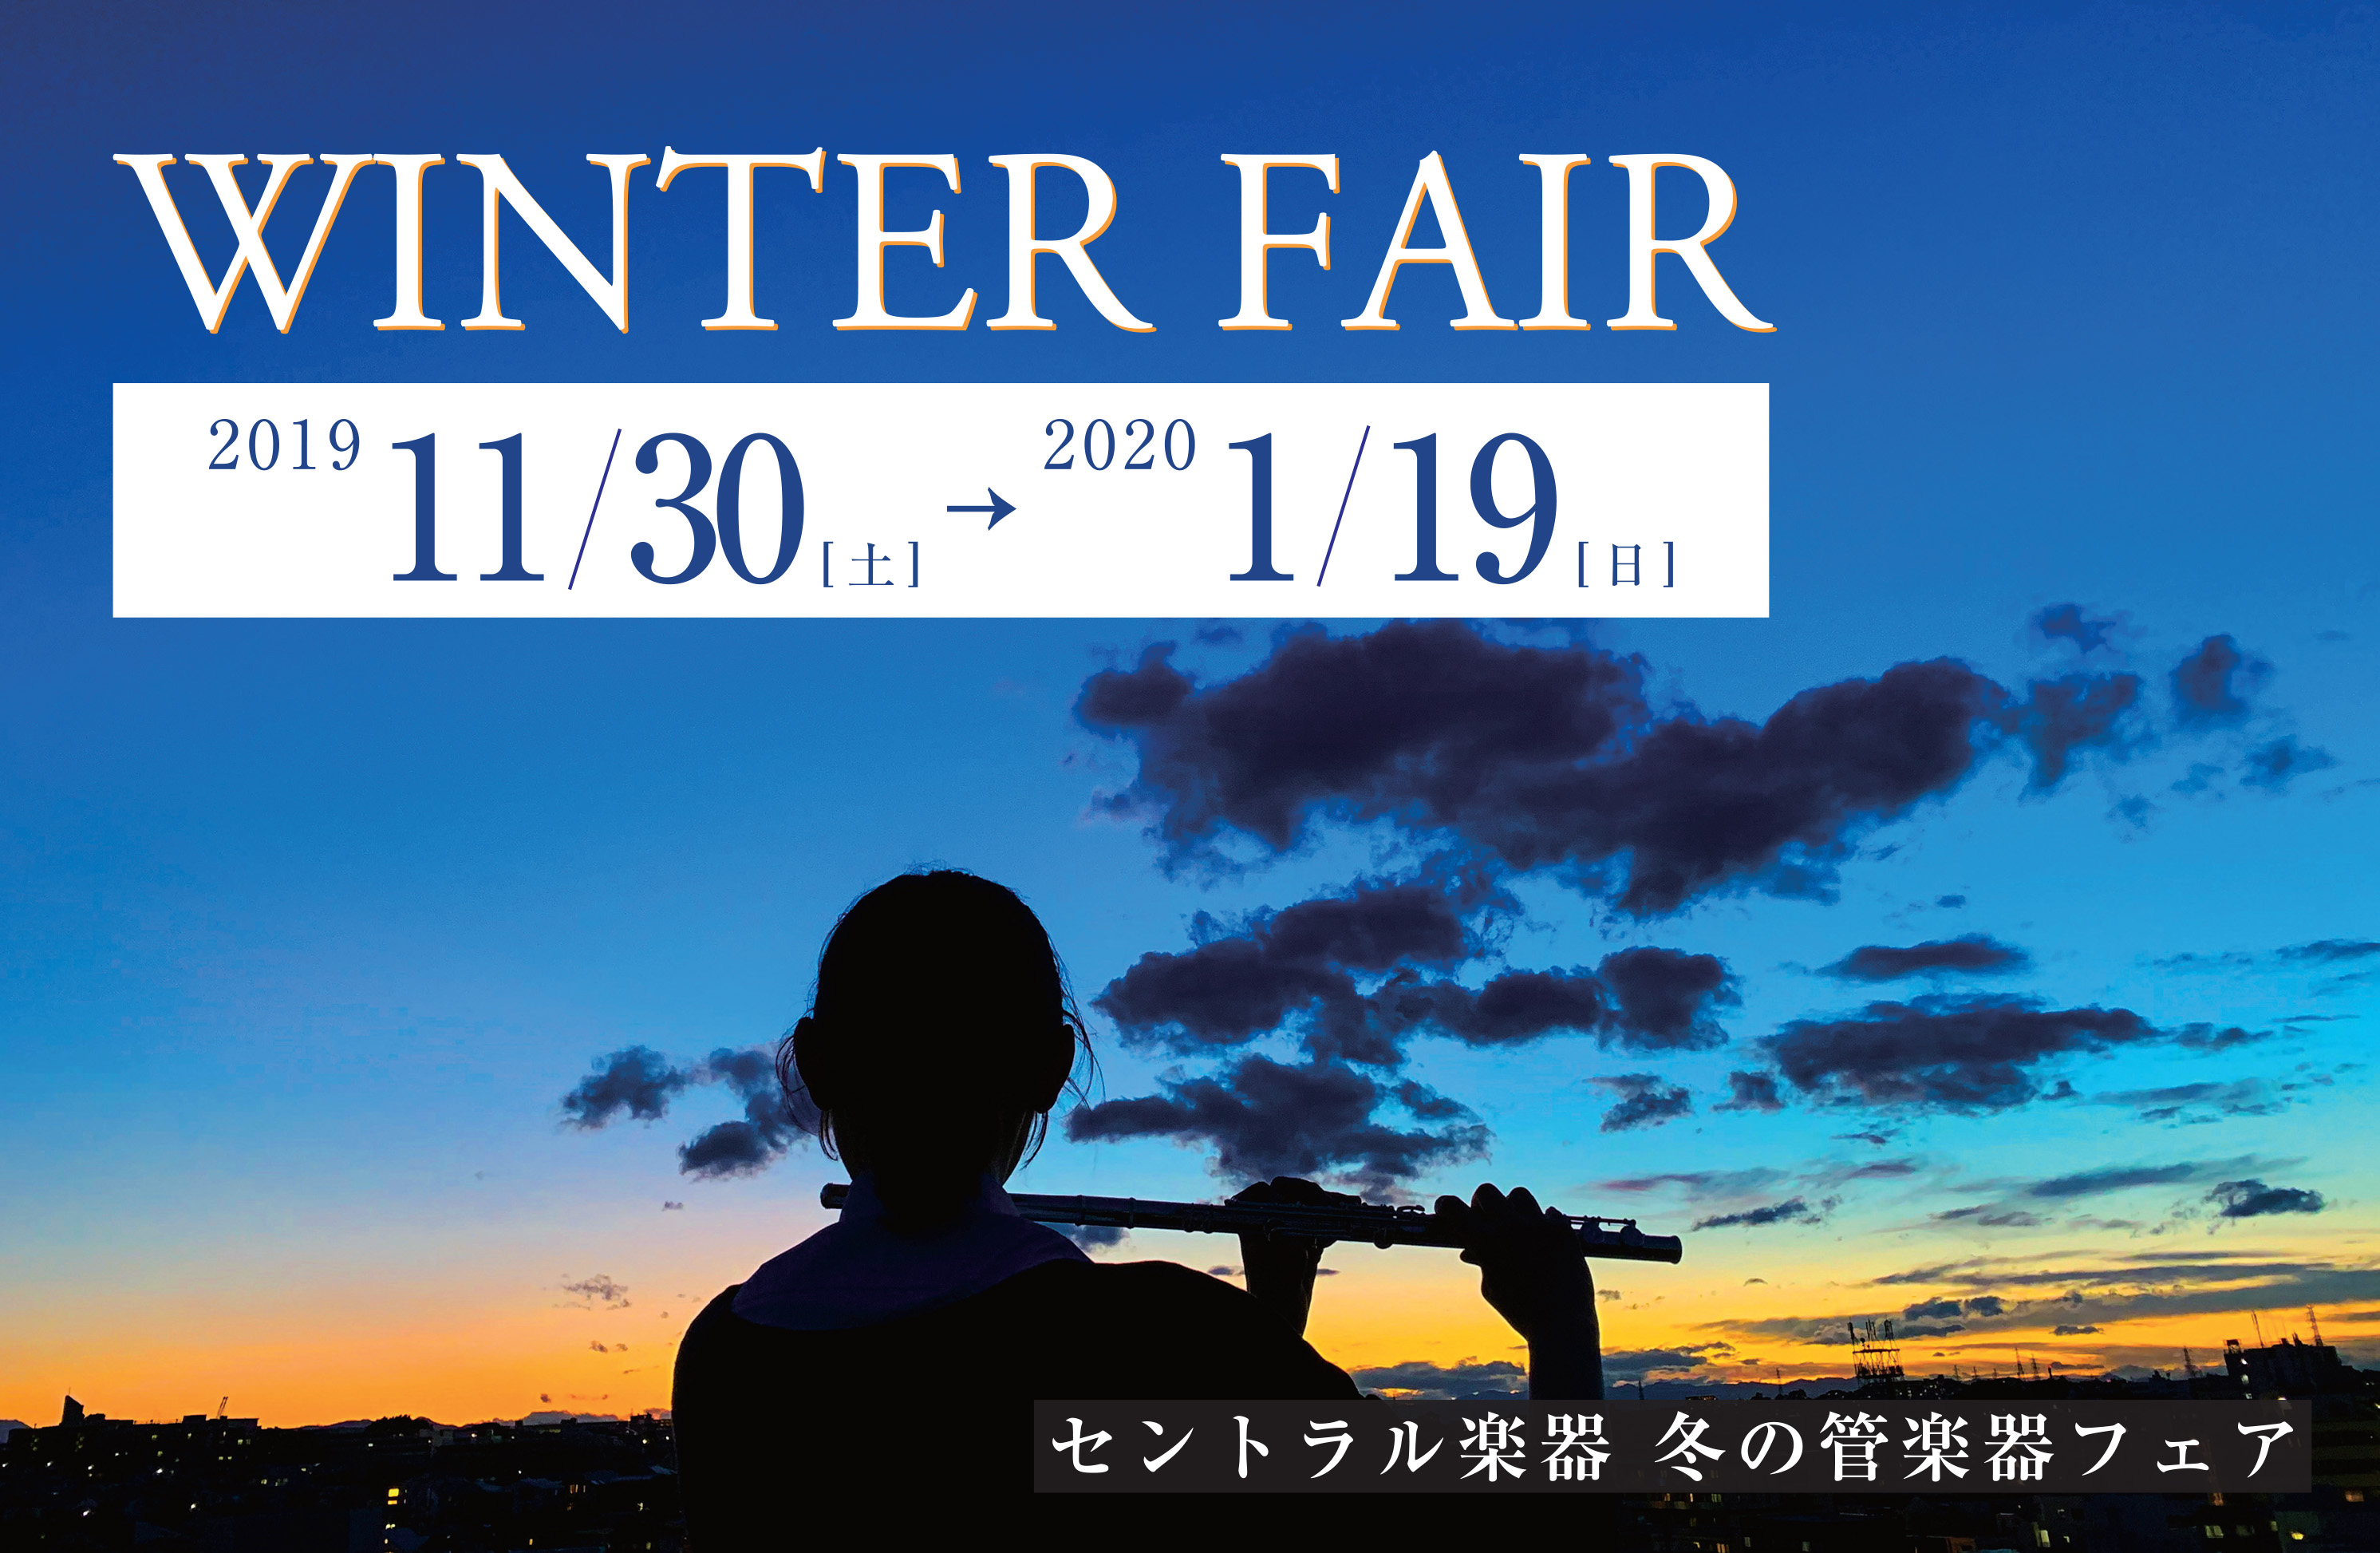 WINTER FAIR 2019-2020